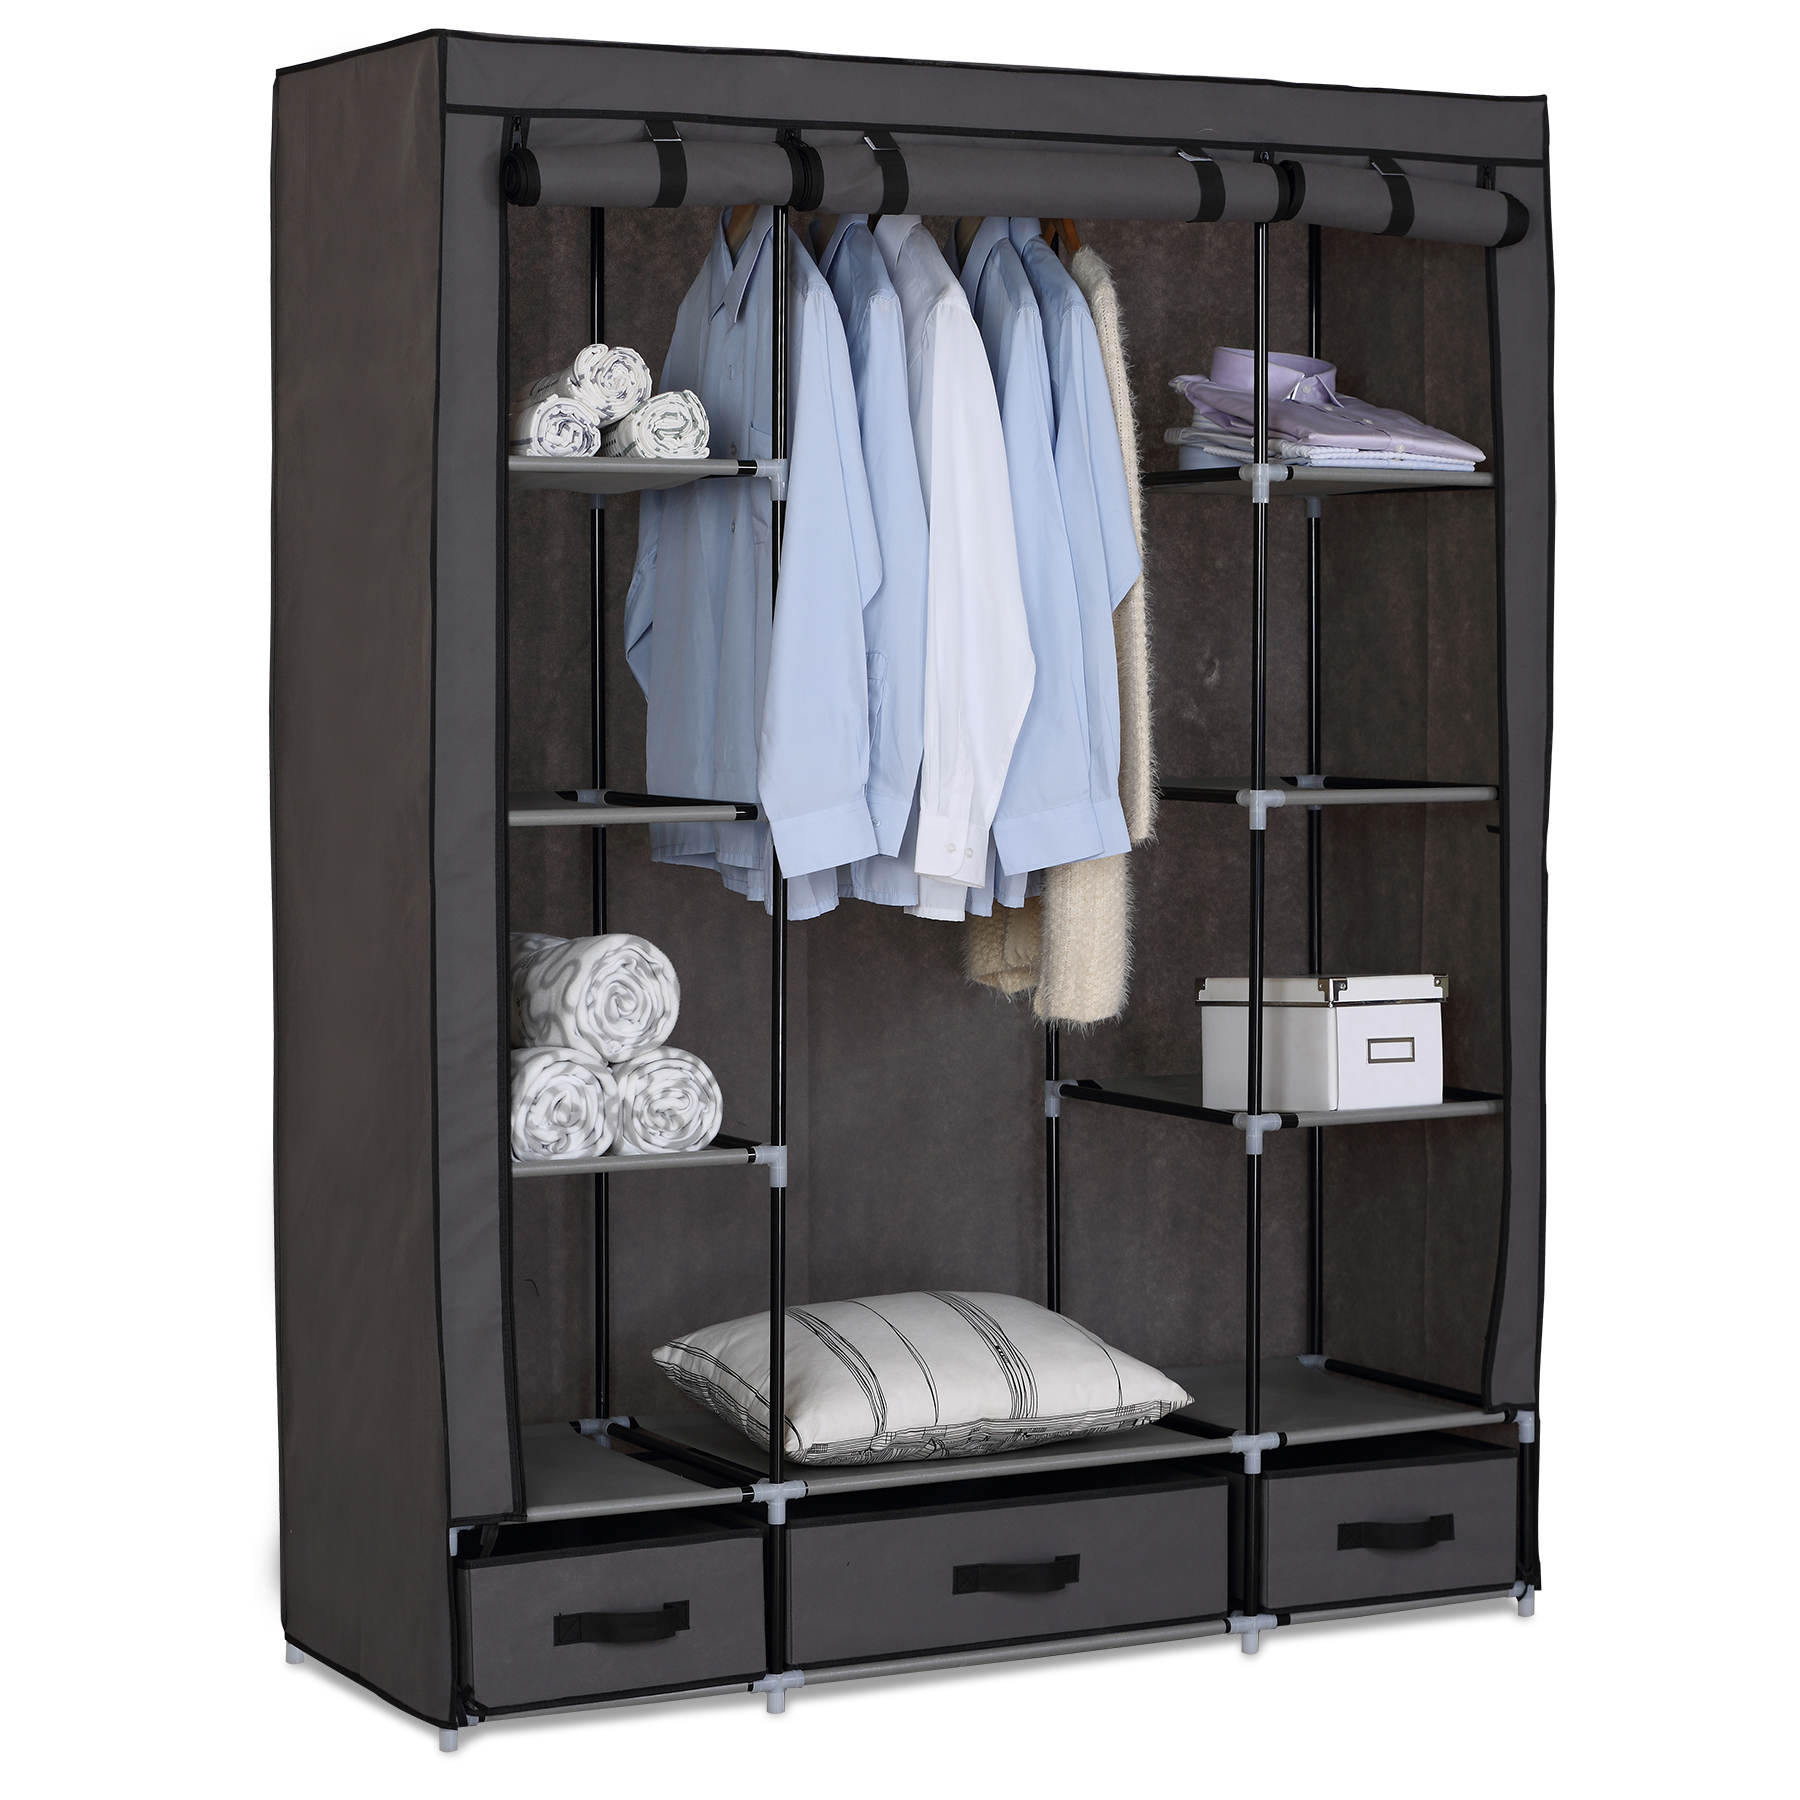 kleiderschrank garderobenschrank campingschrank. Black Bedroom Furniture Sets. Home Design Ideas